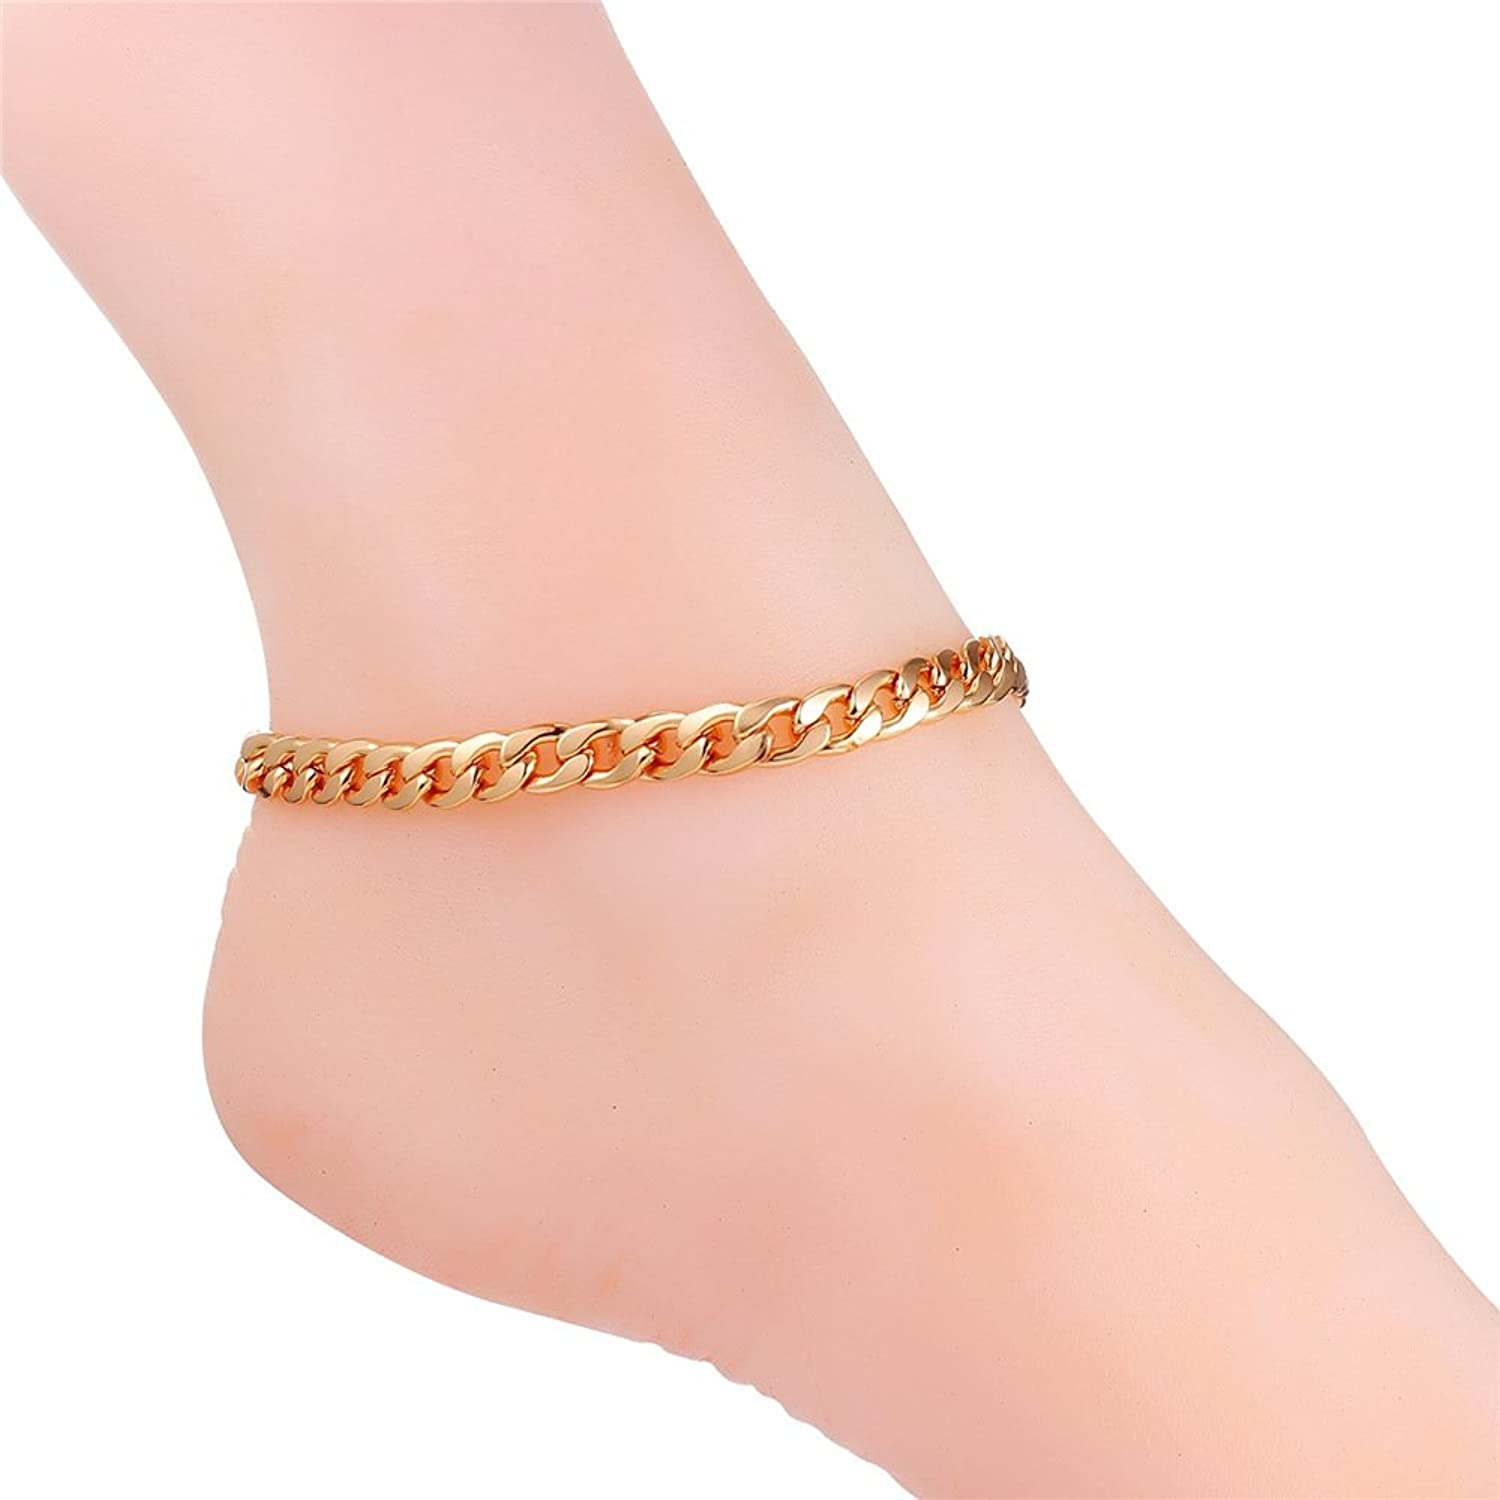 foot ankle anklets jewelry product fashion womens bracelet chains chain silver gold sexy anklet plated simple gifts